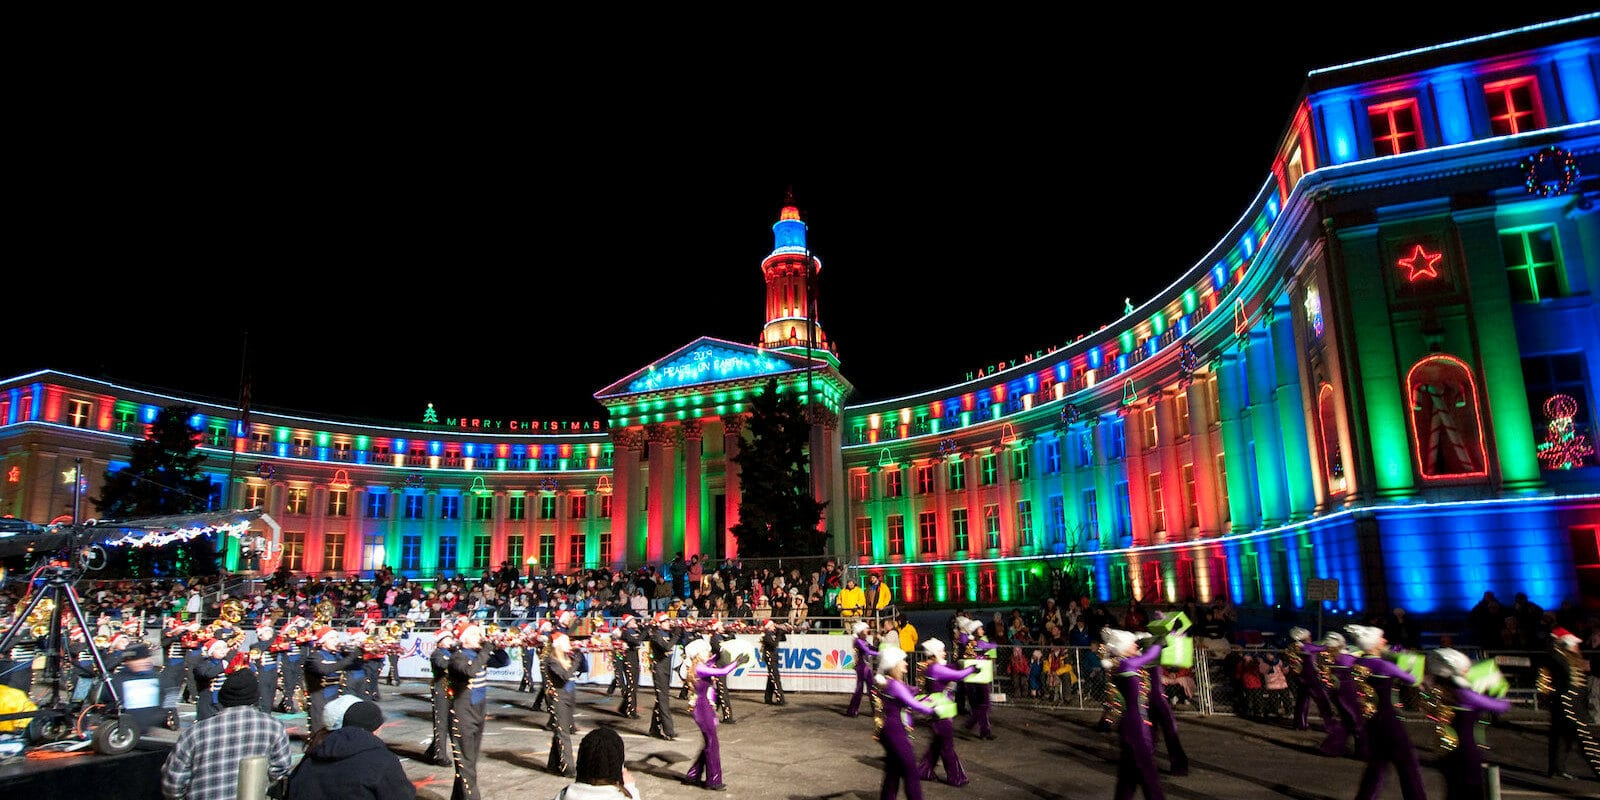 Image from the Parade of Lights in Denver, Colorado